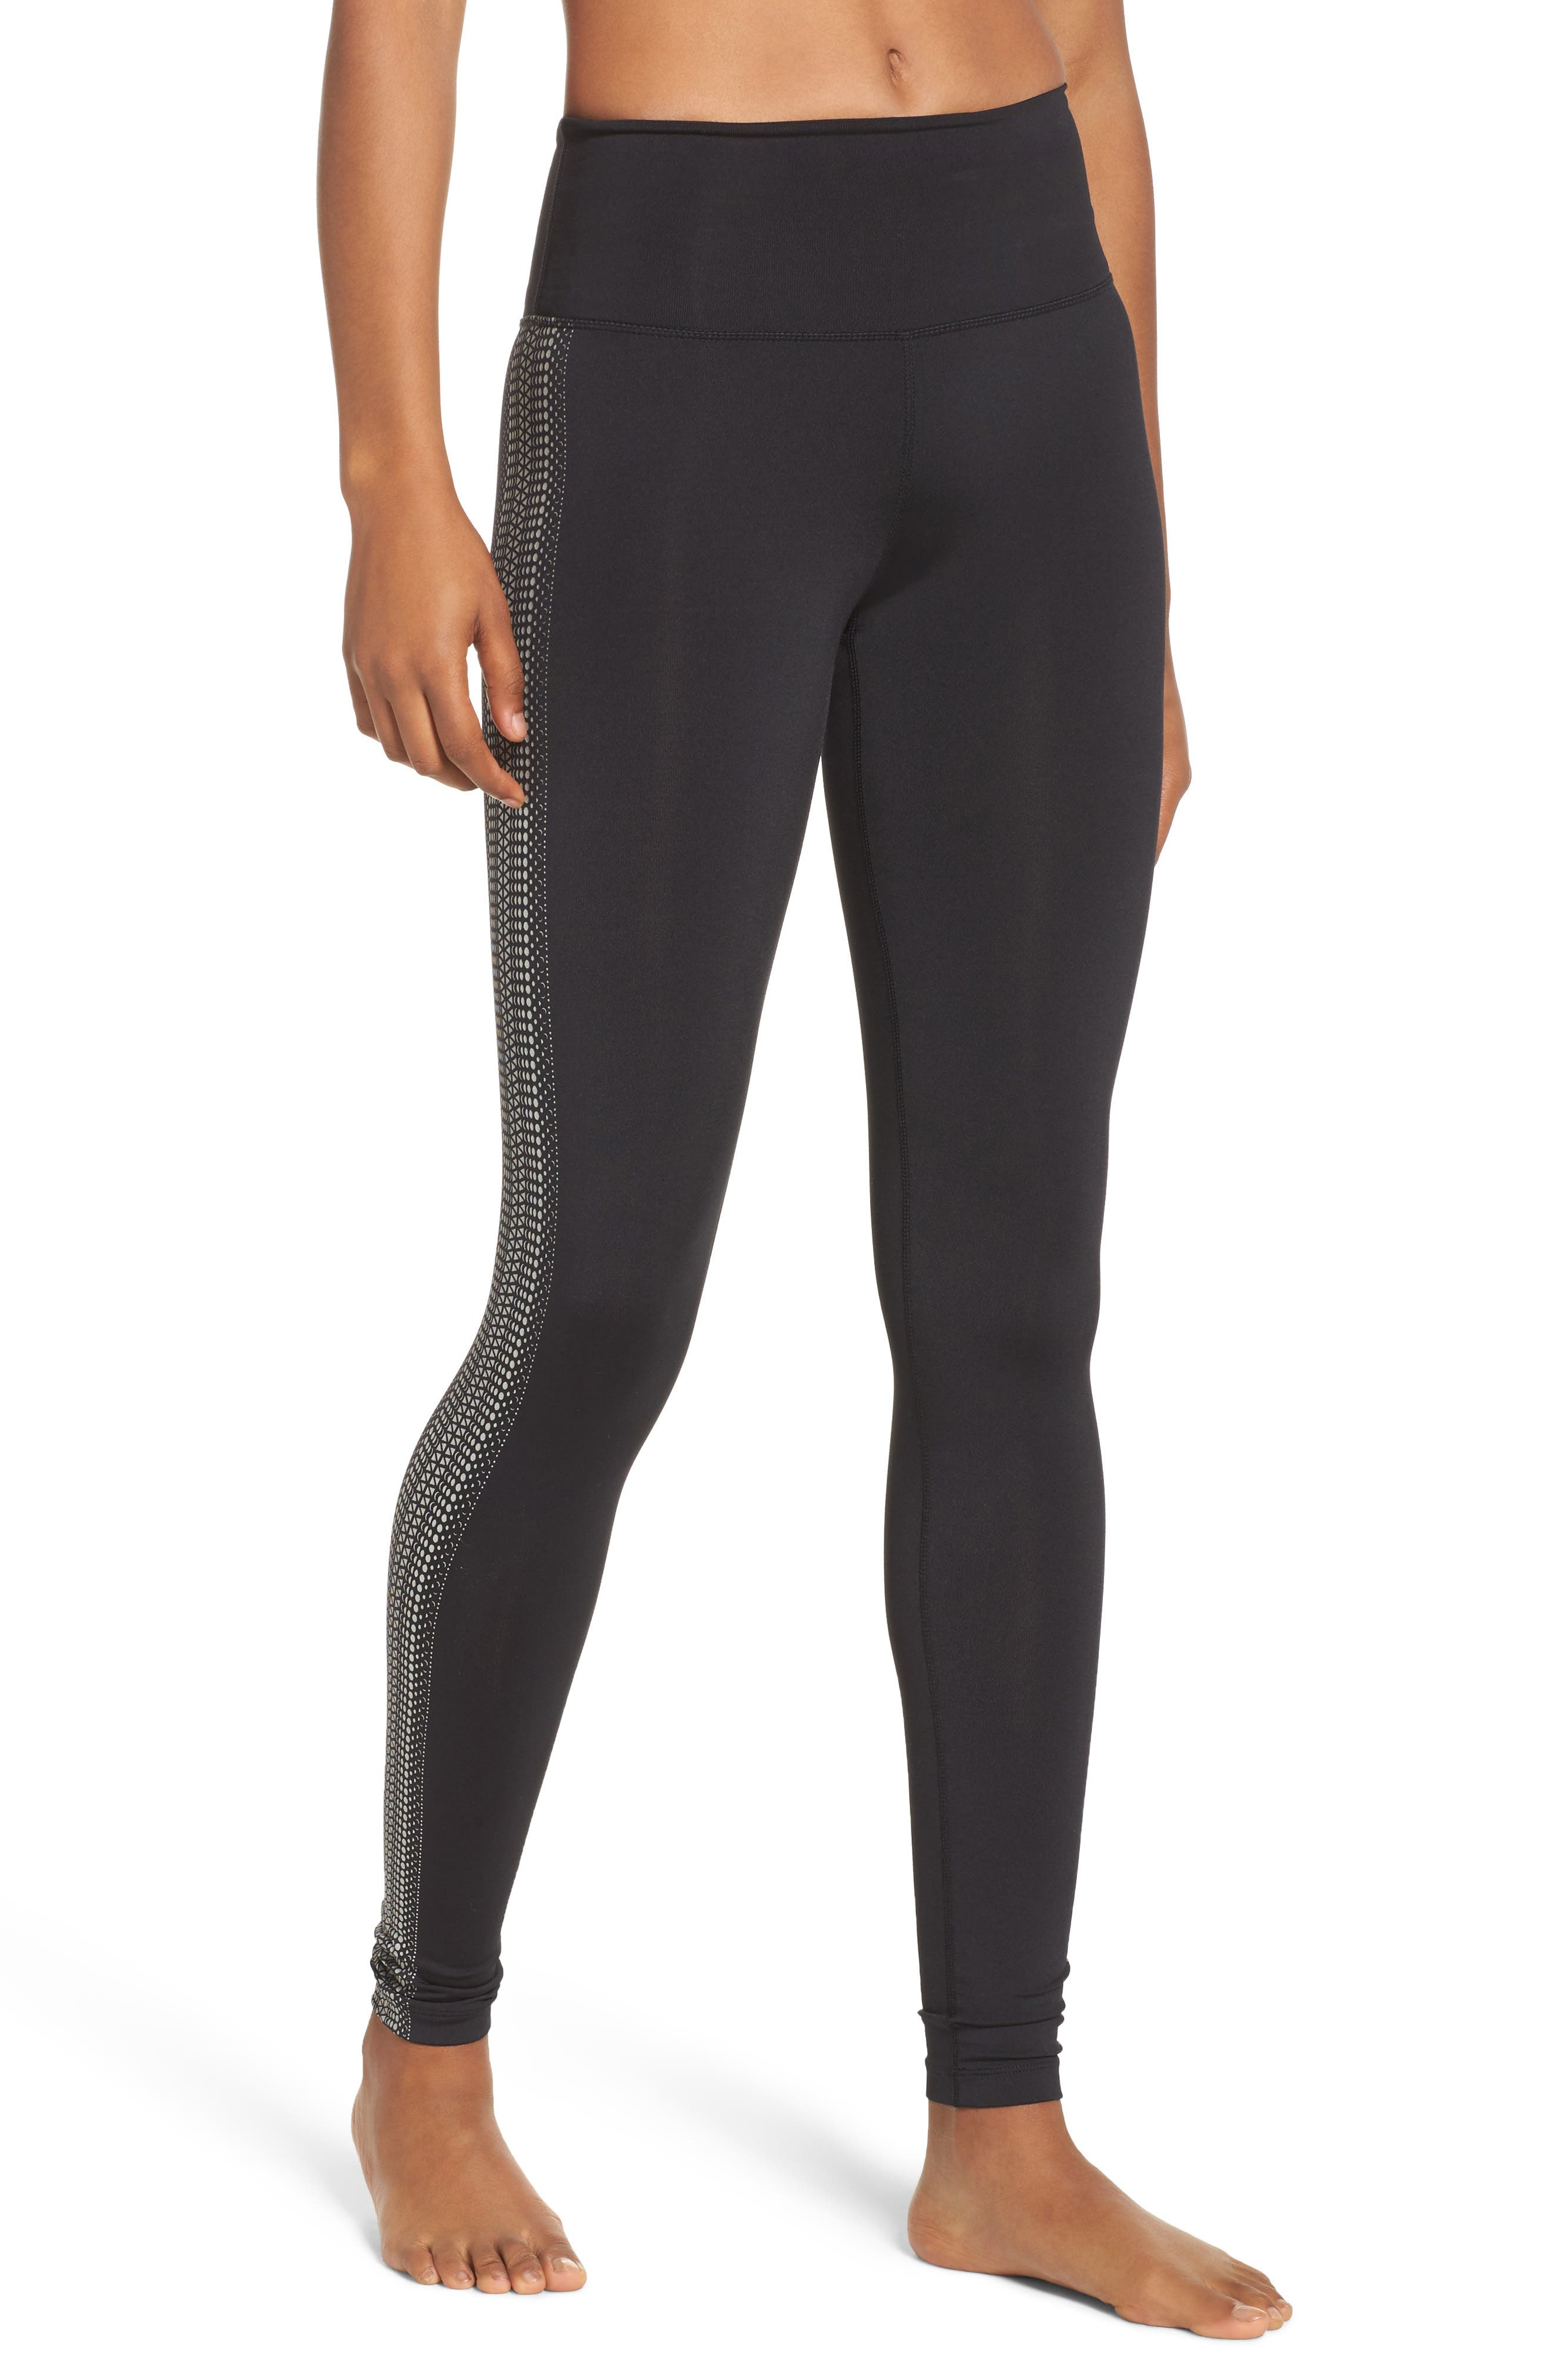 FP Movement Raku Reflective Leggings,                         Main,                         color, Black